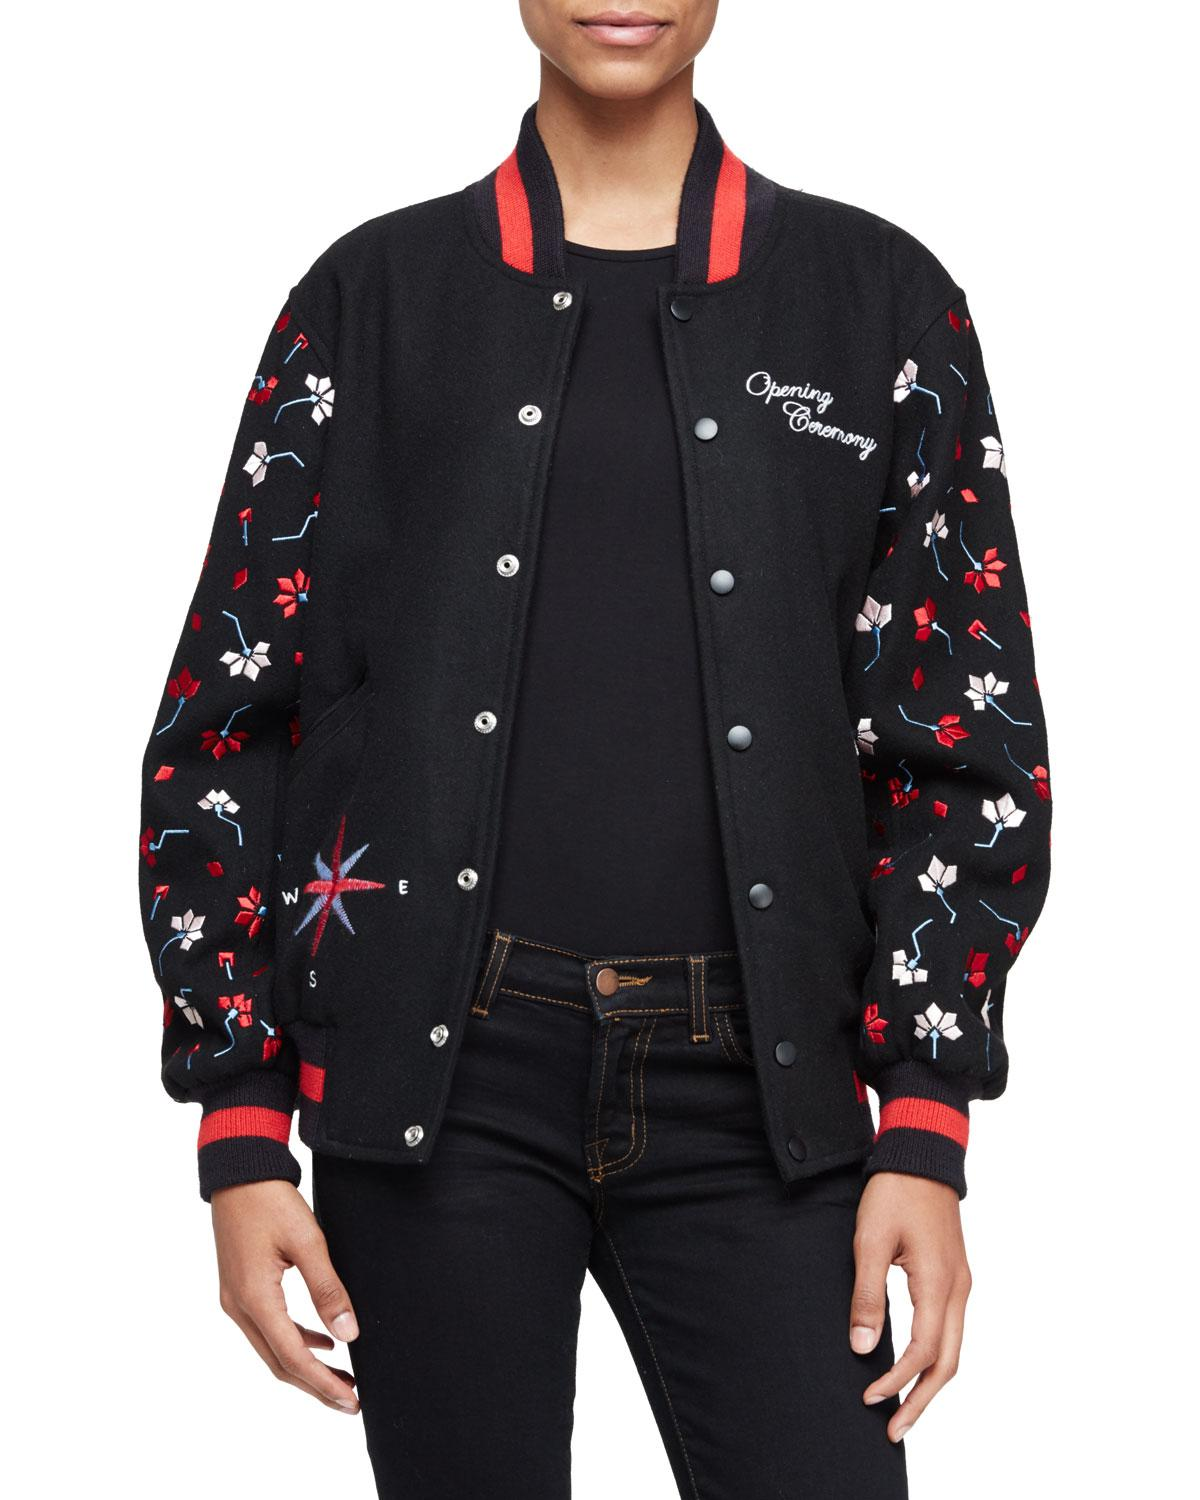 Opening ceremony embroidered varsity jacket in black lyst